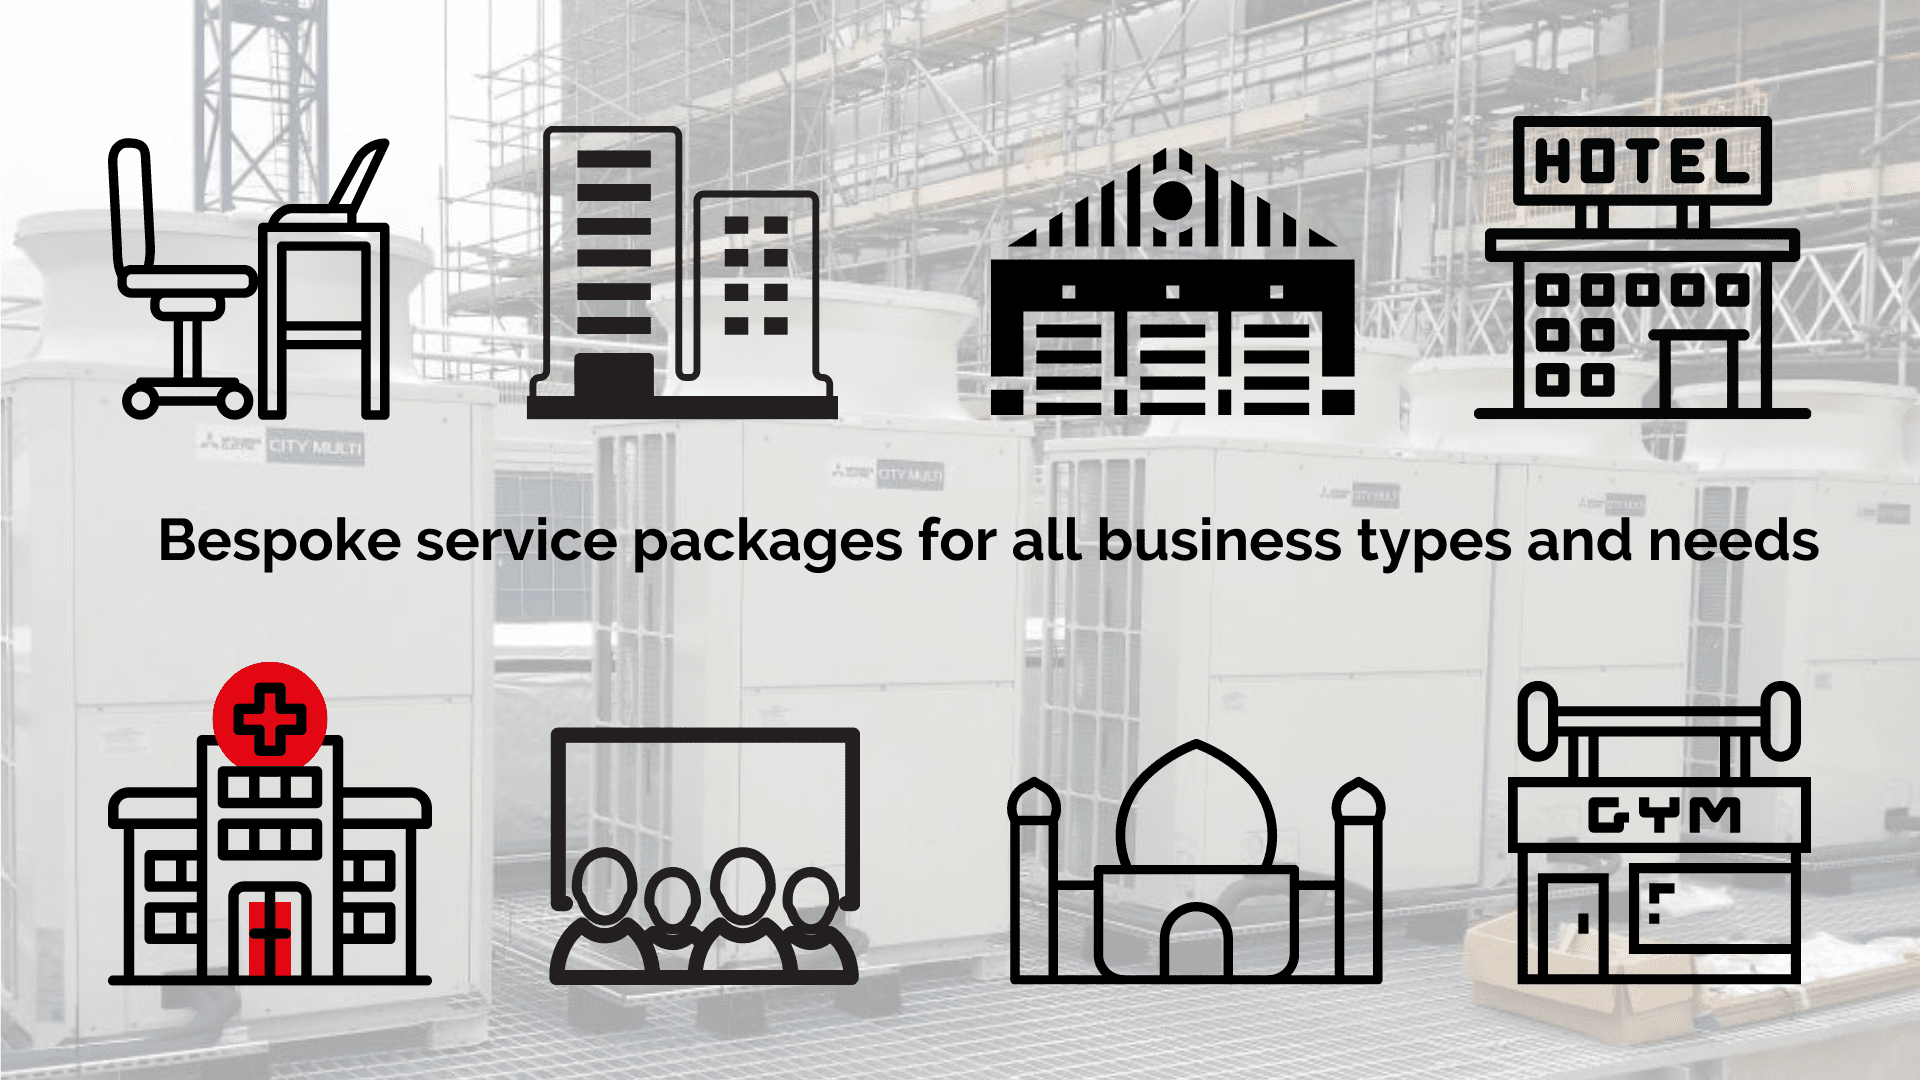 Bespoke air conditioning service packages for all business types and needs - big and small offices, warehouses, hotels, medical centres, entertainment venues, places of worship, health centres